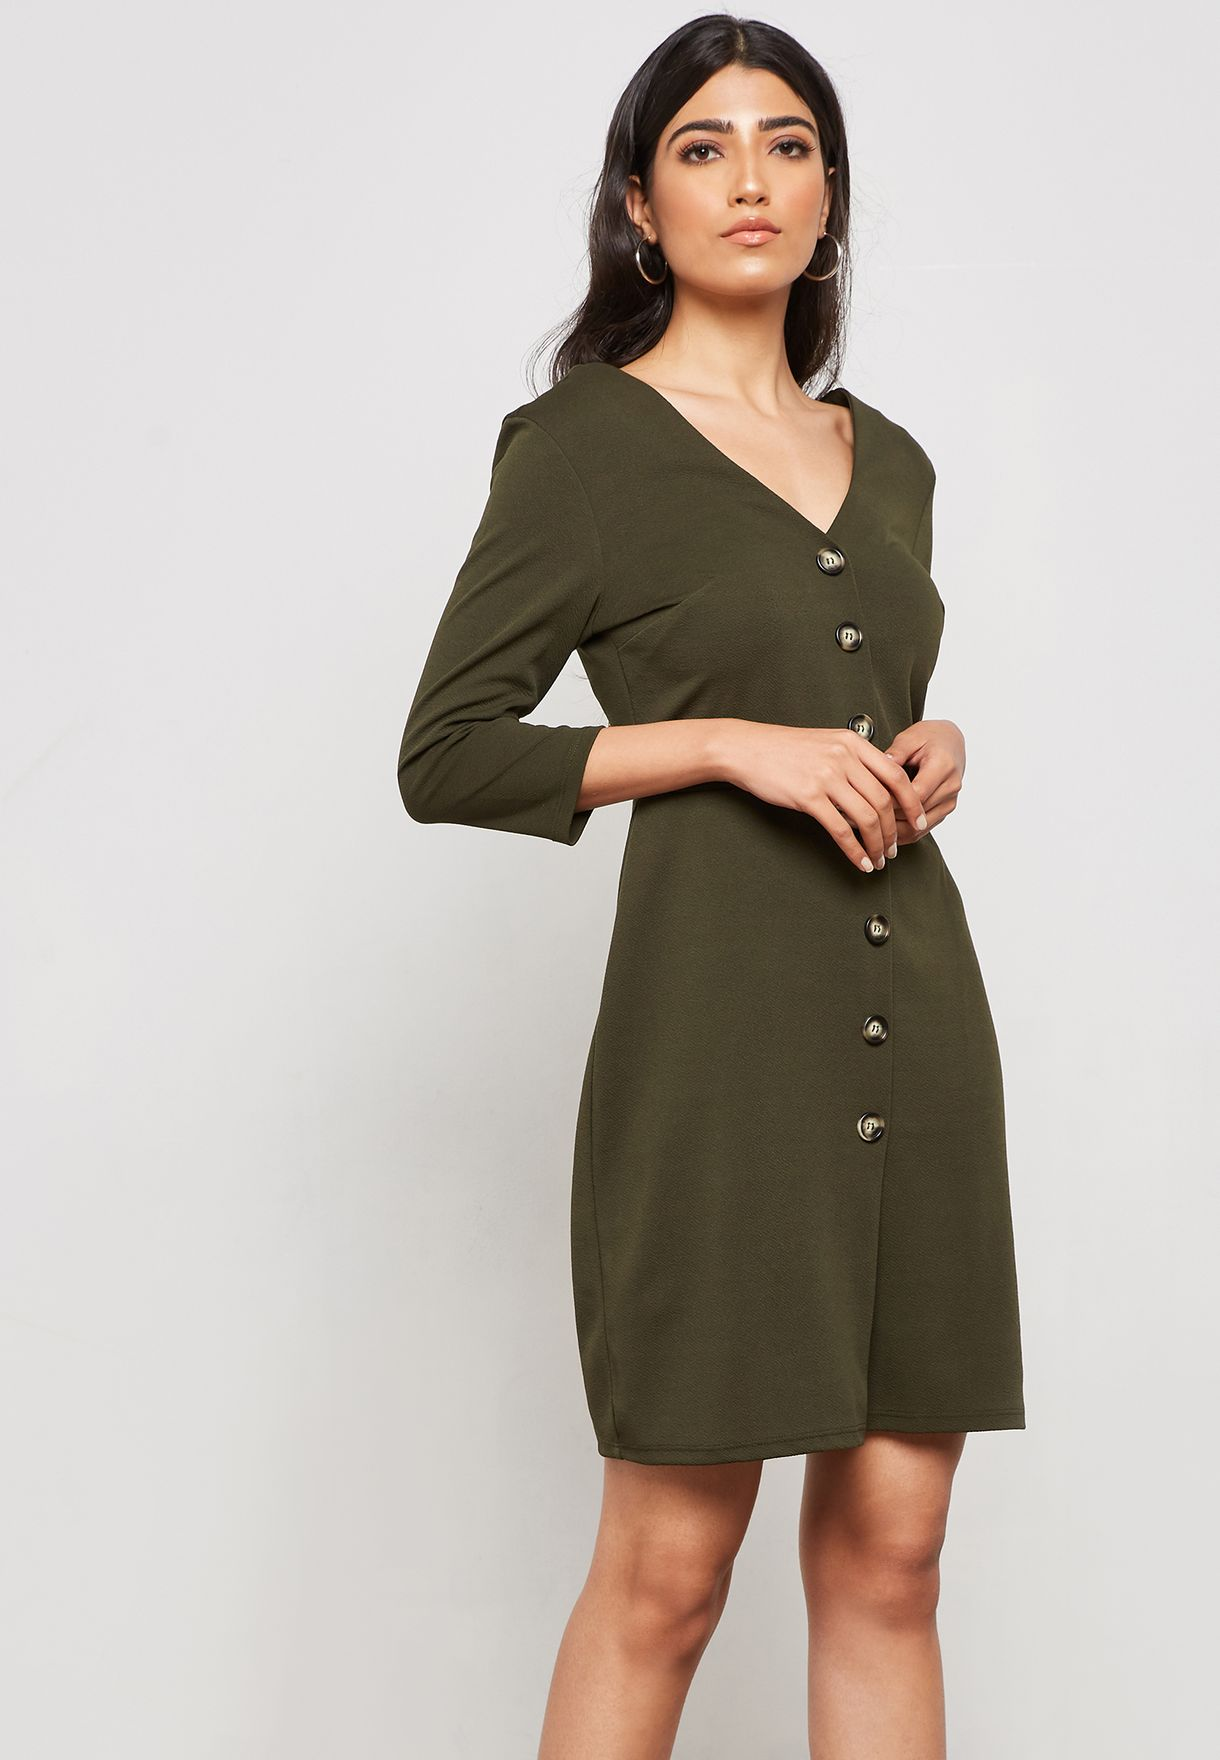 3f702e05461d Shop Dorothy Perkins green Button Down Bodycon Dress 97288543 for ...